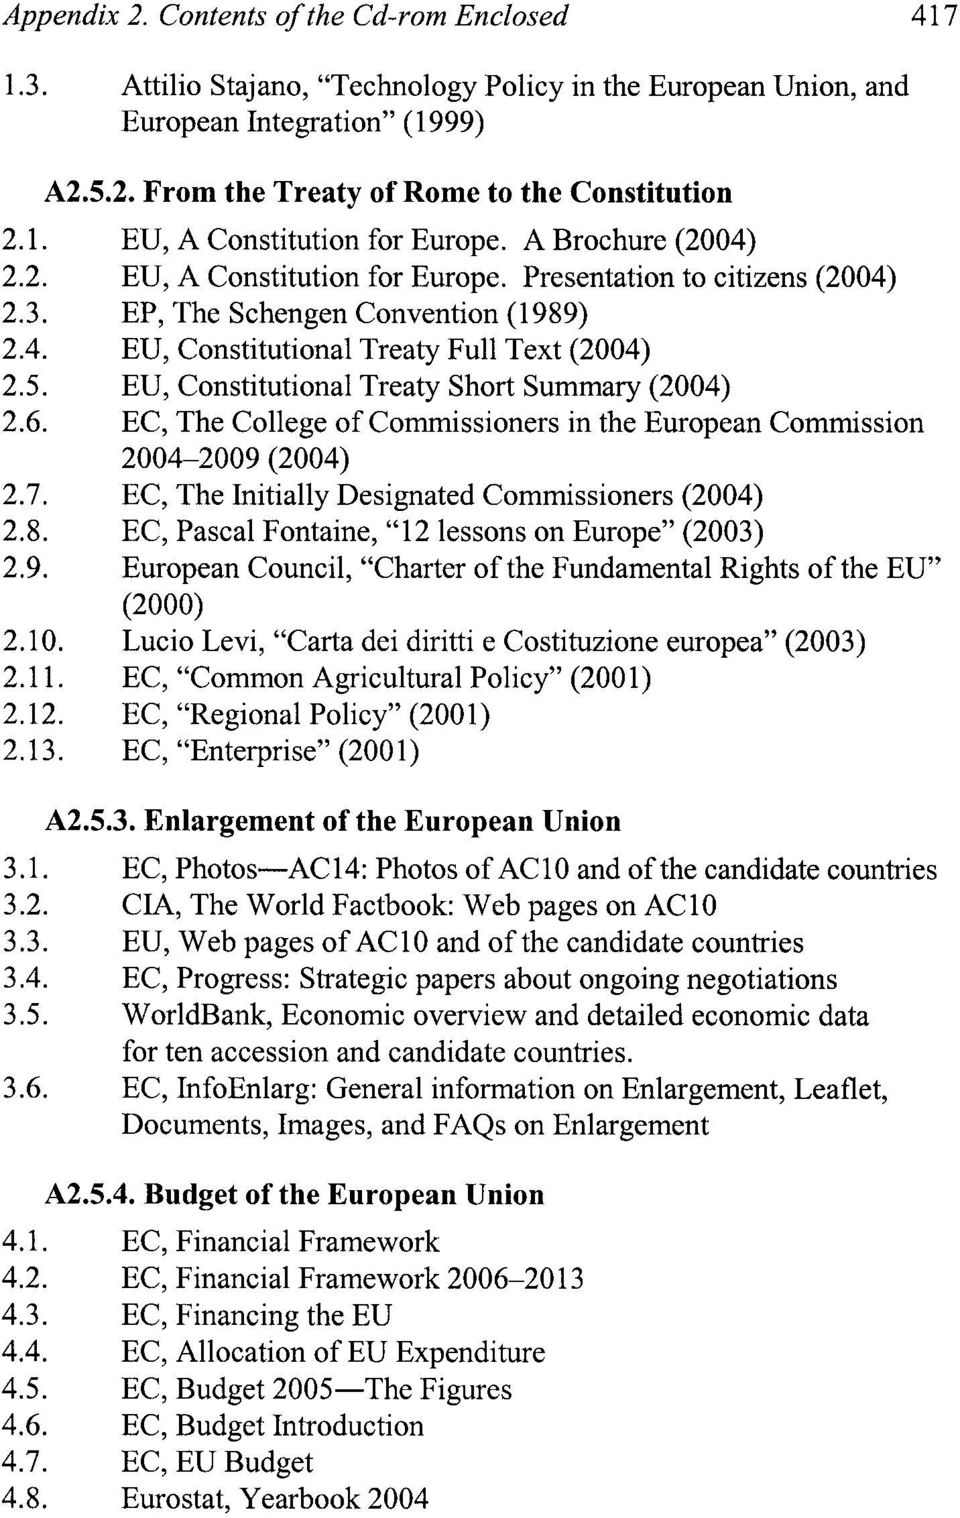 5. EU, Constitutional Treaty Short Summary (2004) 2.6. EC, The College of Commissioners in the European Commission 2004-2009 (2004) 2.7. EC, The Initially Designated Commissioners (2004) 2.8.